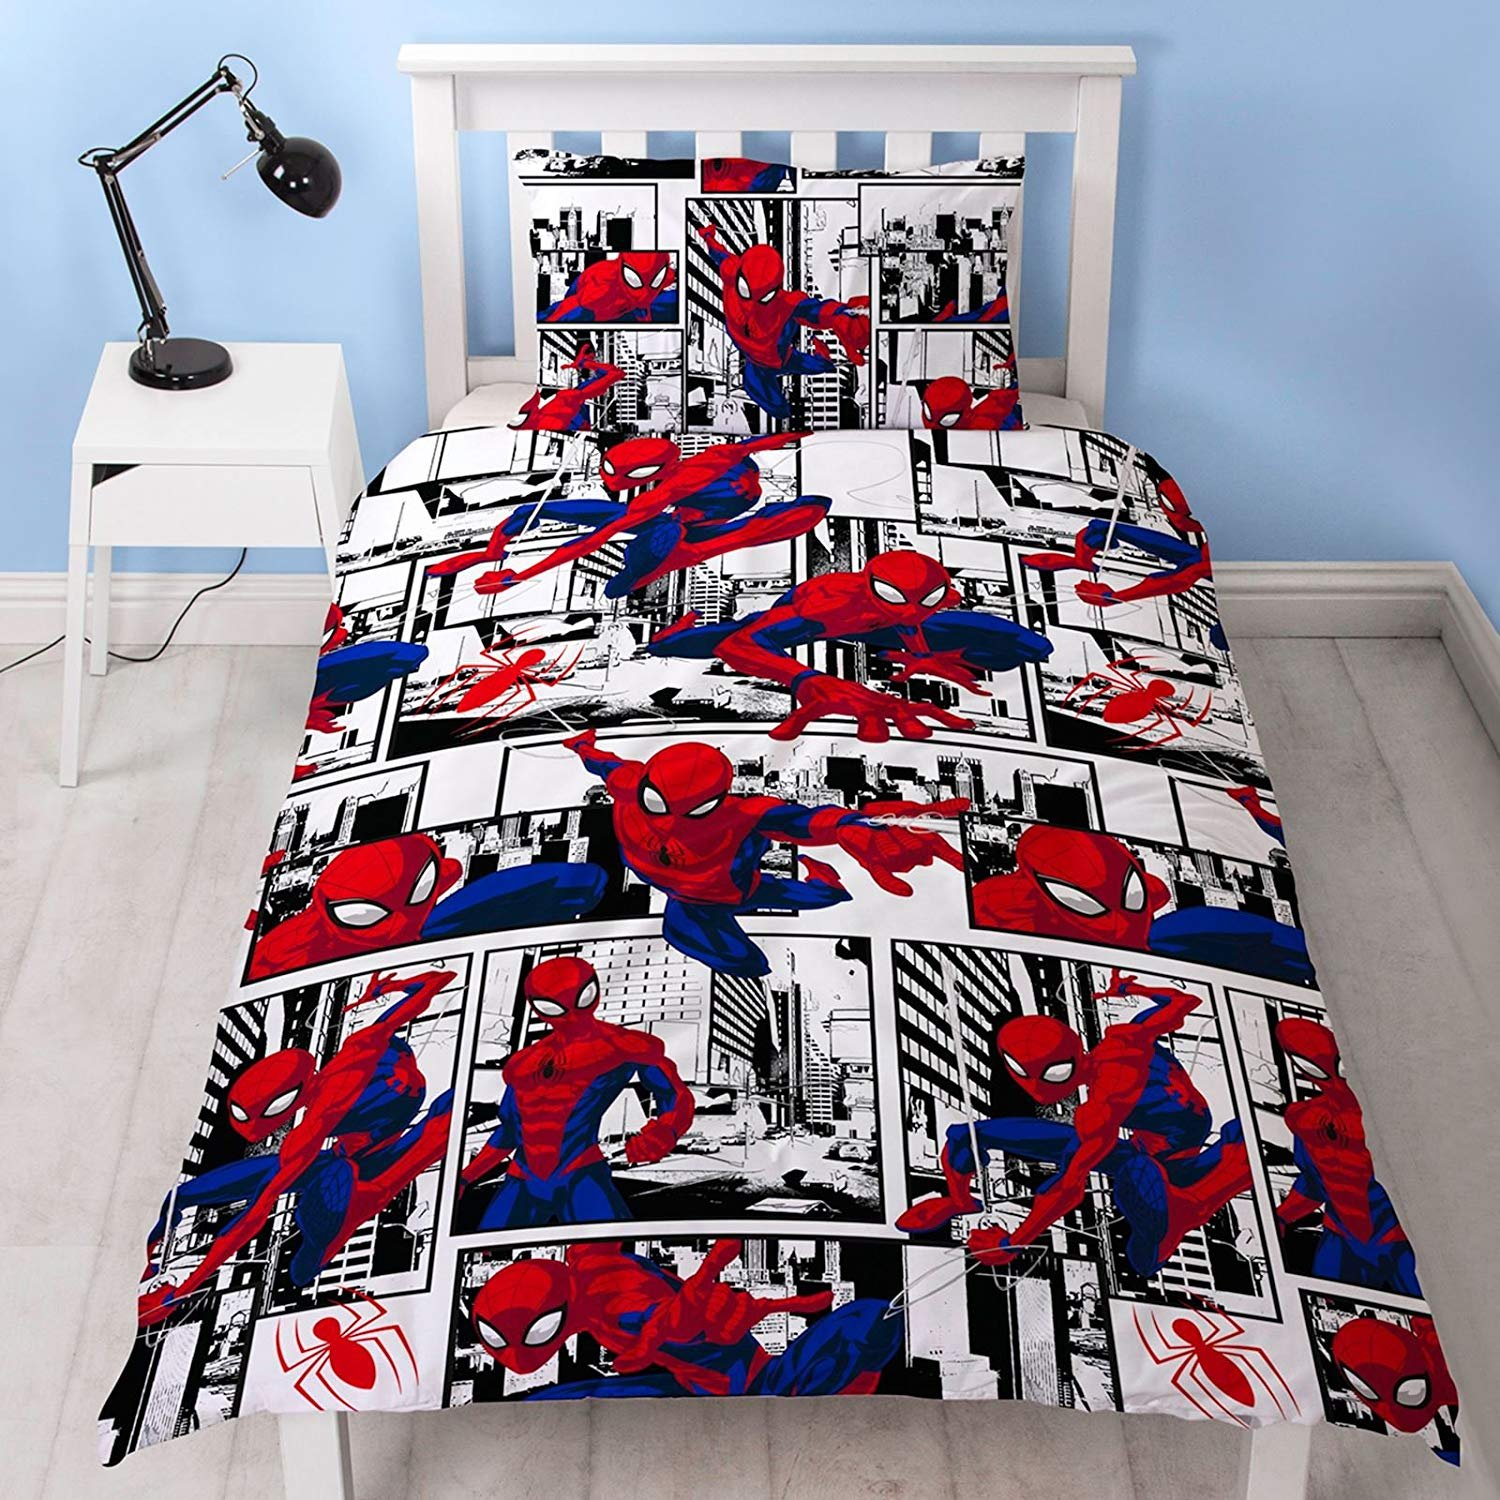 Spiderman Metropolis UK Single/US Twin Unfilled Duvet Cover and Pillowcase Set Character World DUSMPSDS002UK1